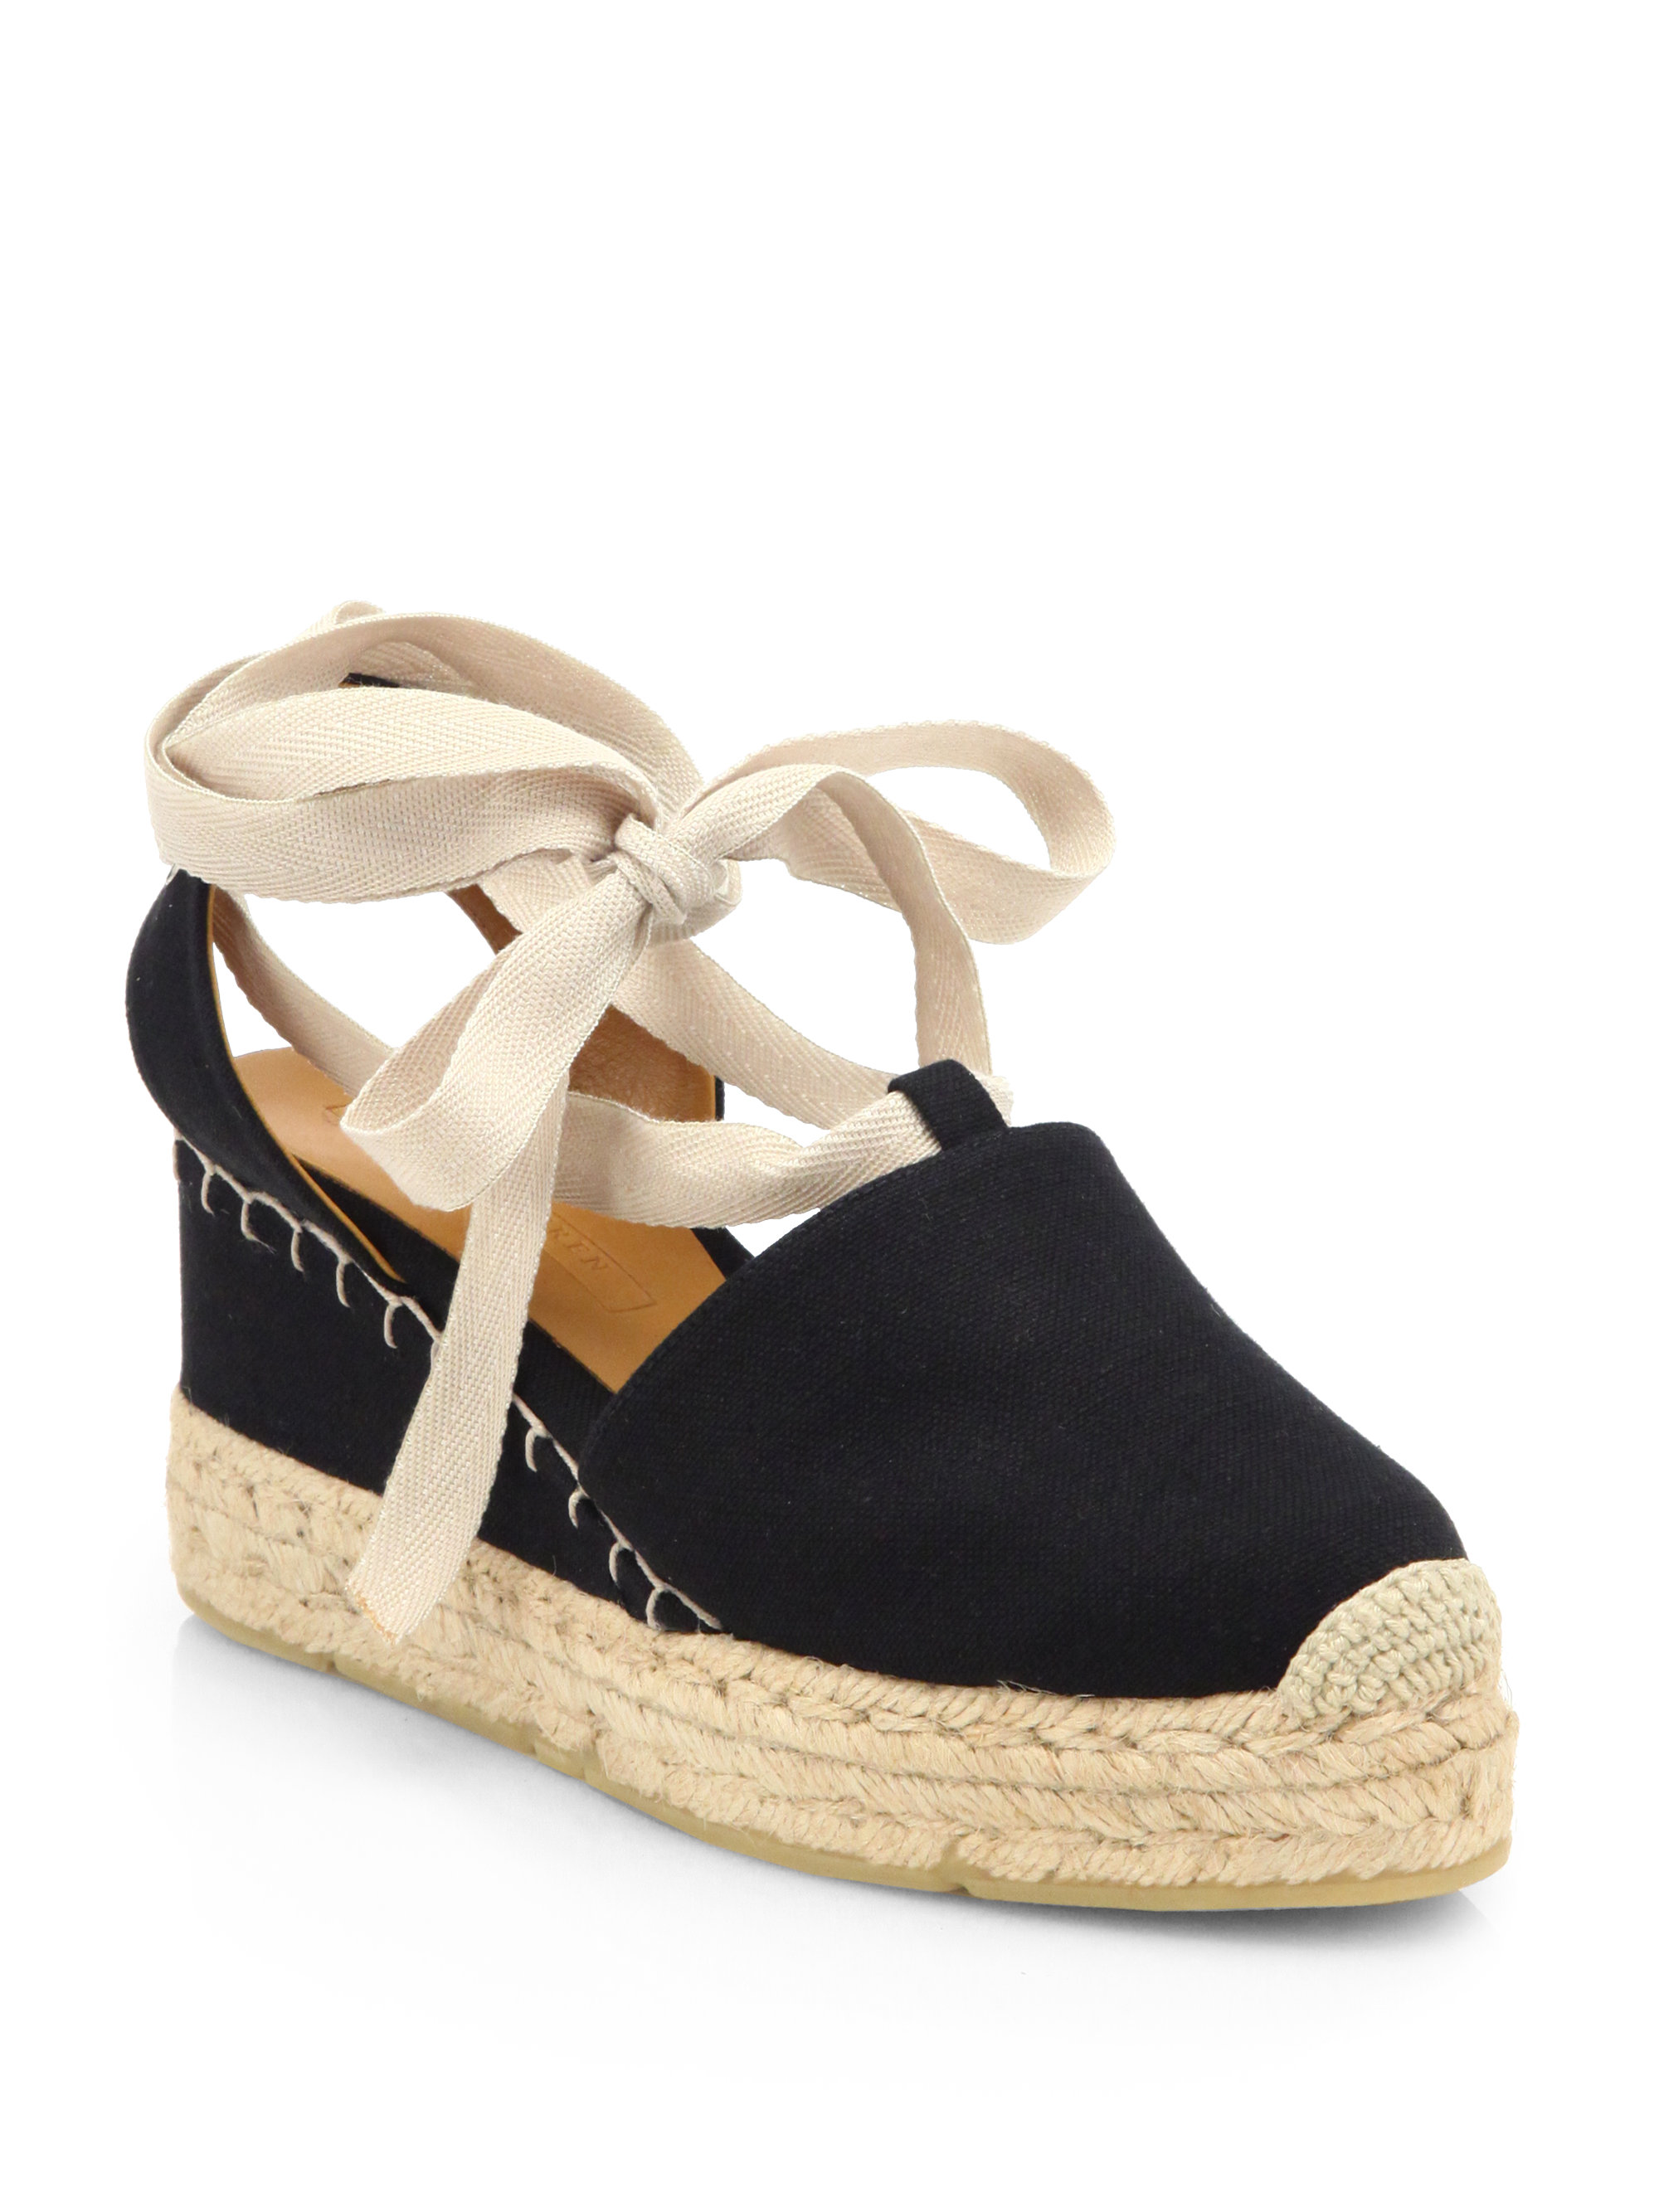 ralph lauren collection uma tieup canvas espadrille sandals in black lyst. Black Bedroom Furniture Sets. Home Design Ideas